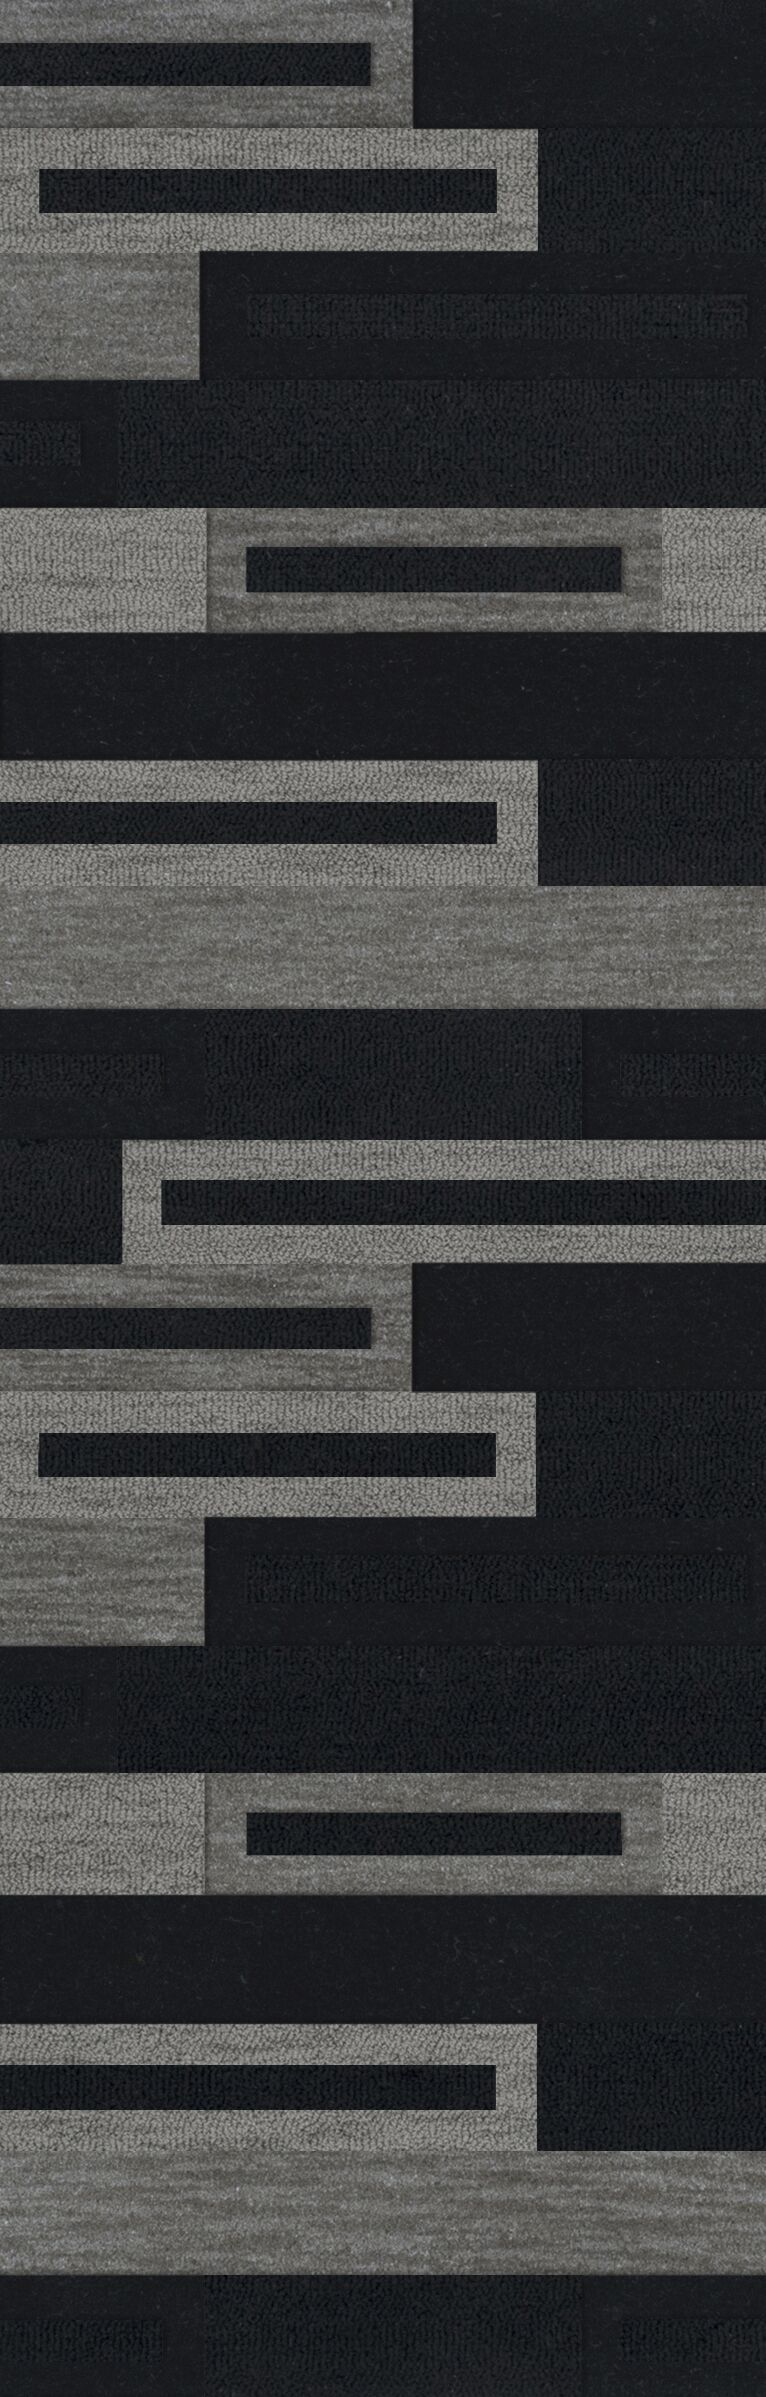 Bella Machine Woven Wool Black/Gray Area Rug Rug Size: Runner 2'6